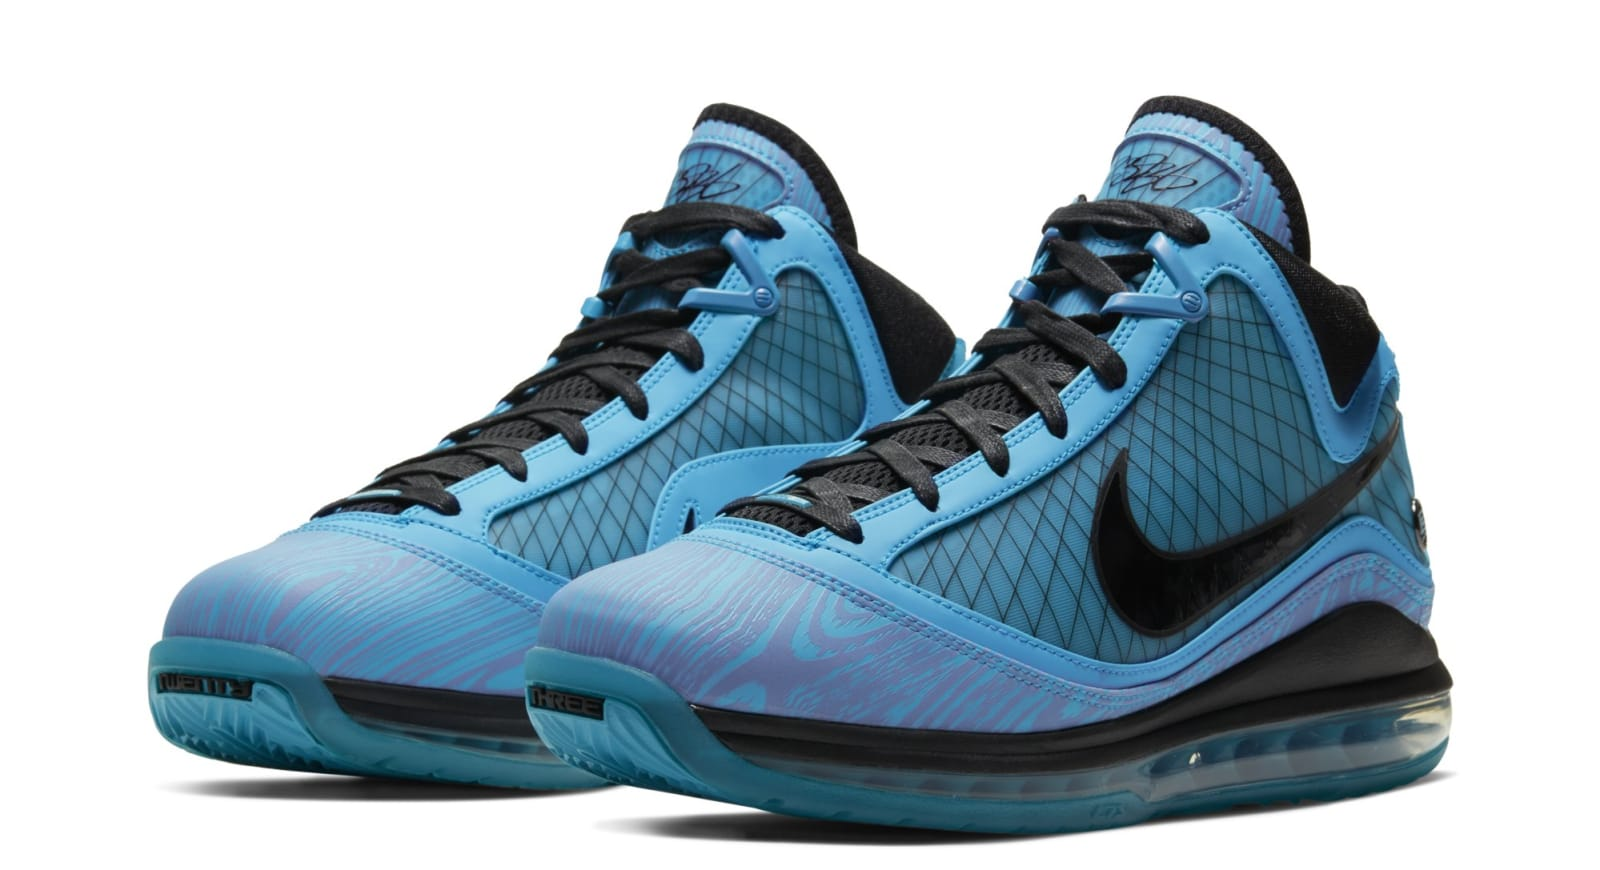 """Nike LeBron 7 """"All-Star"""" Release Date Revealed: Official Images"""